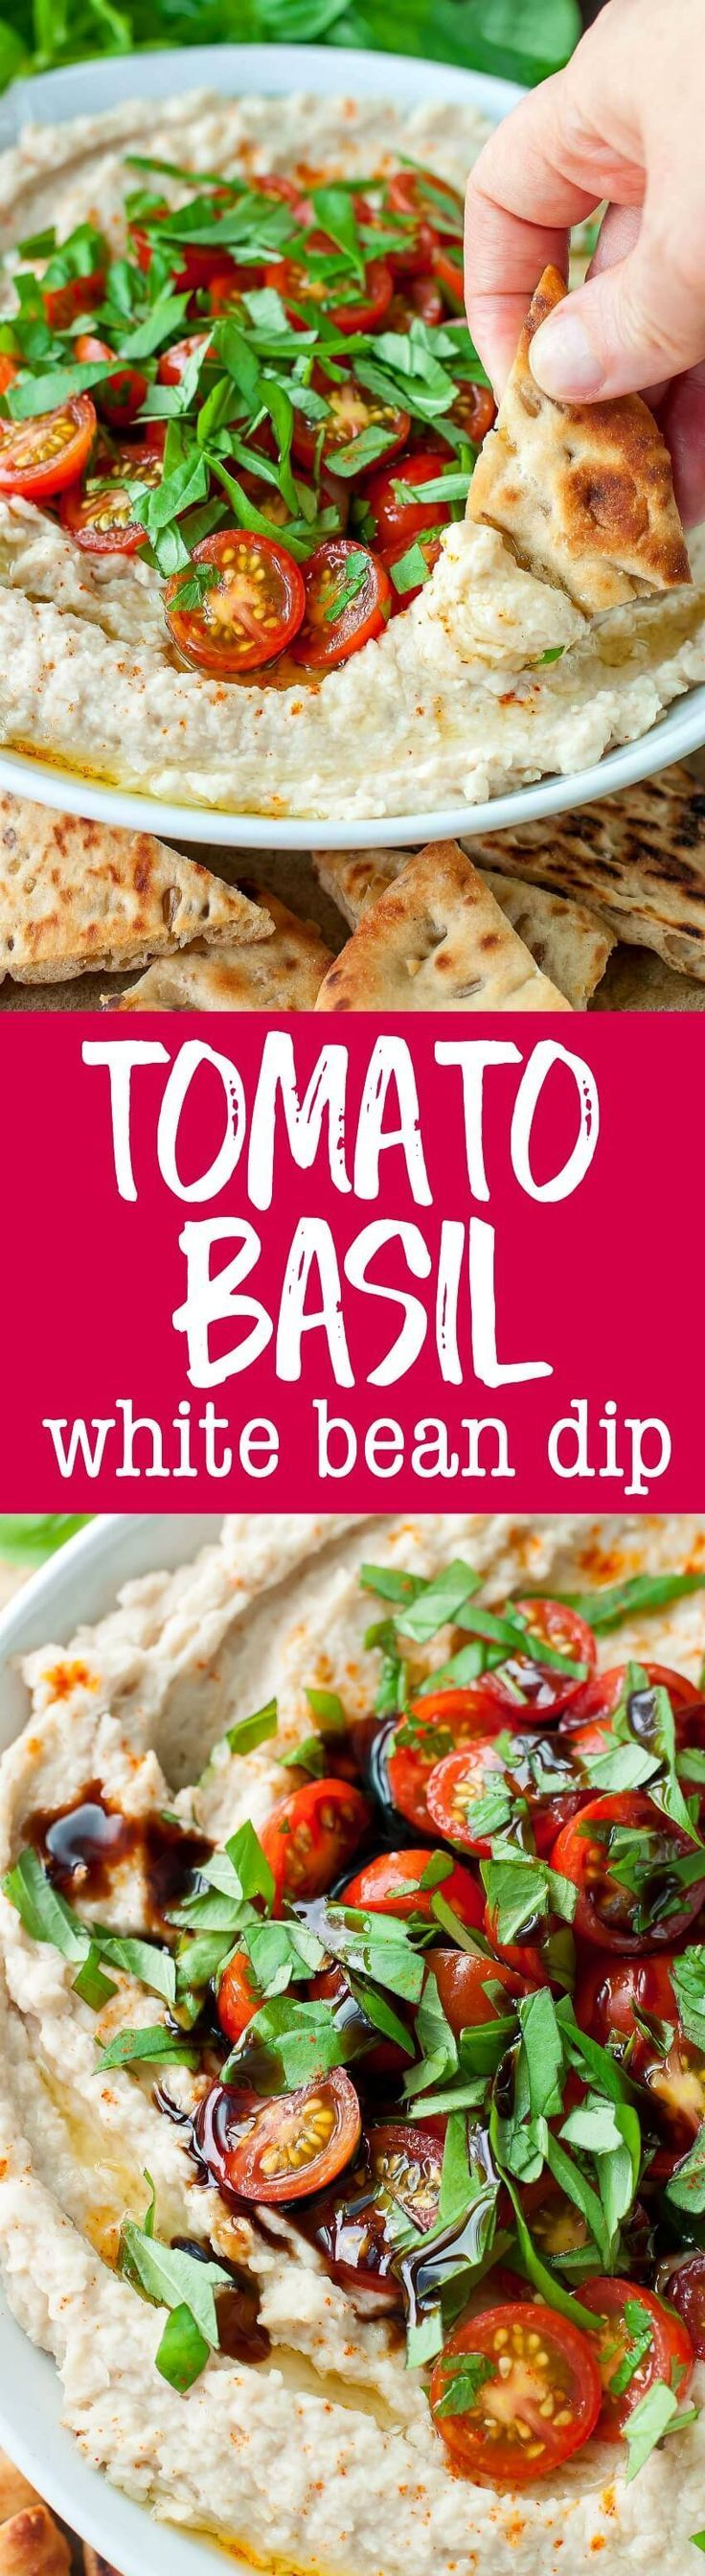 1000+ images about Beans on Pinterest | White beans, Beans recipes and ...